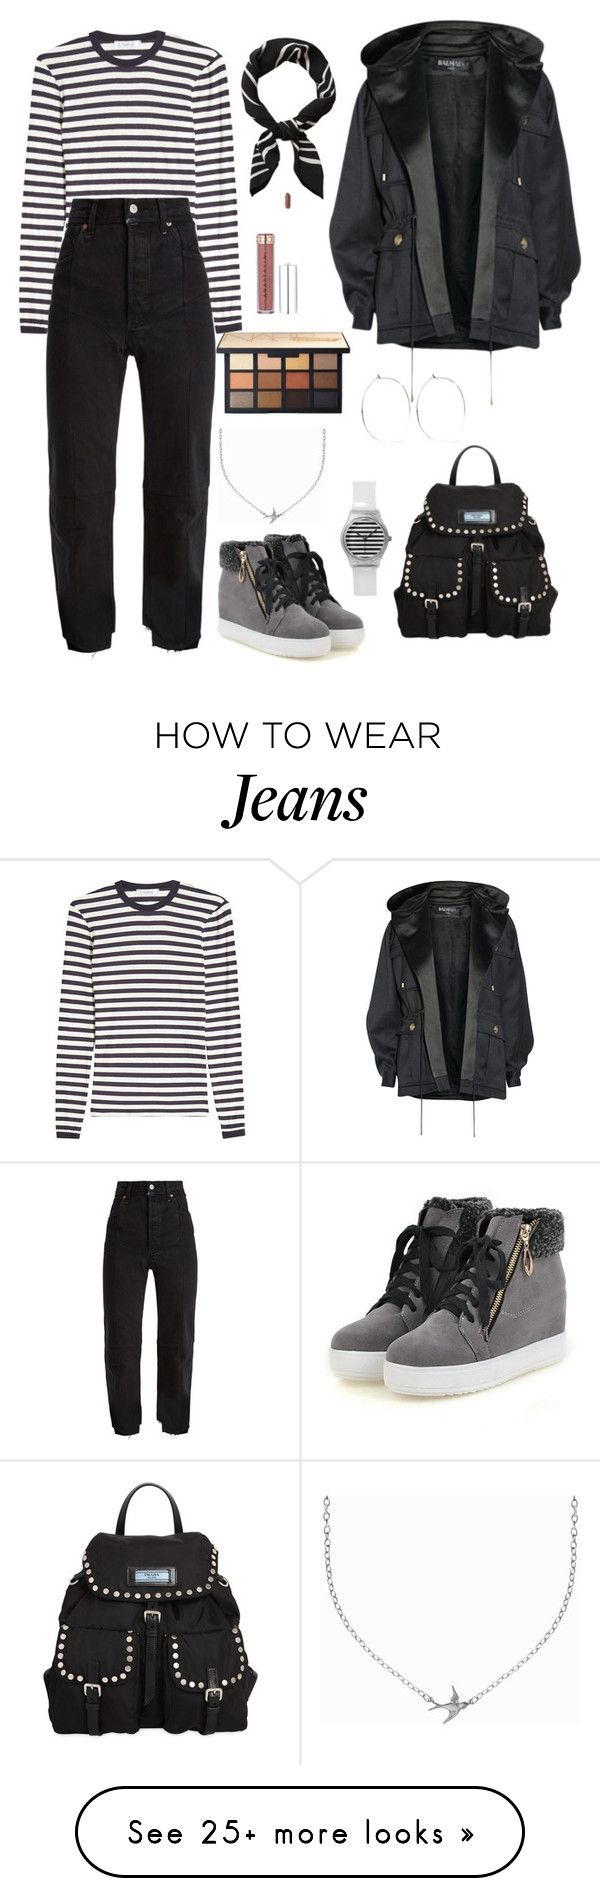 """White Sgriped Shirt & Black  Chill Jeans"" by patricia-alamattila on Polyvore featuring Prada, MaxMara, Vetements, Balmain, Catbird and Minnie Grace"